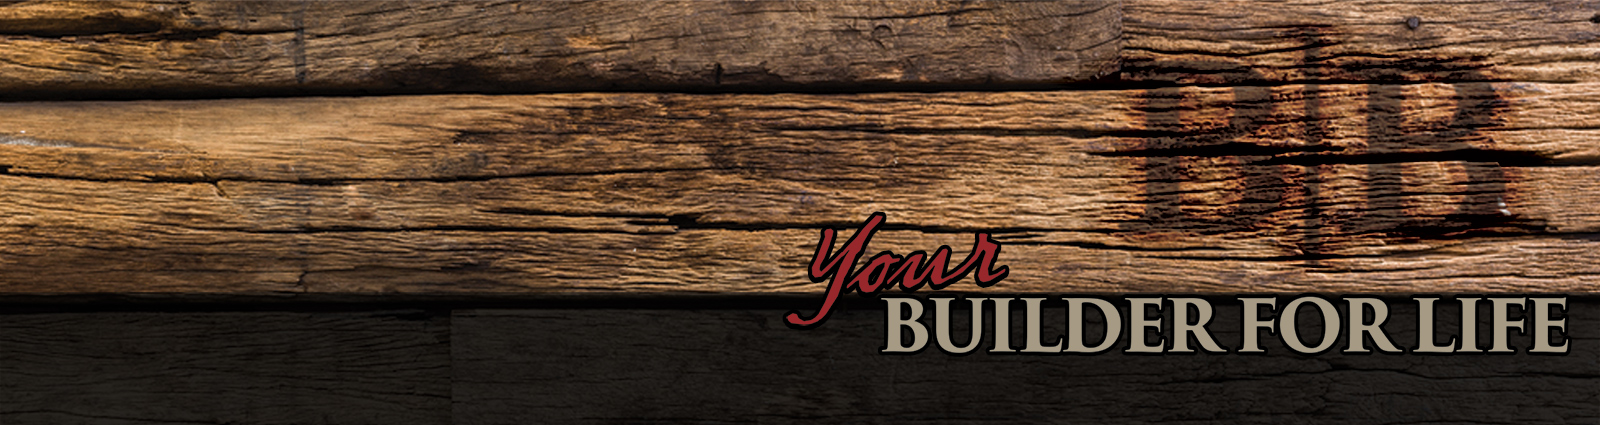 Baratto Brothers Construction - Your Builder For Life